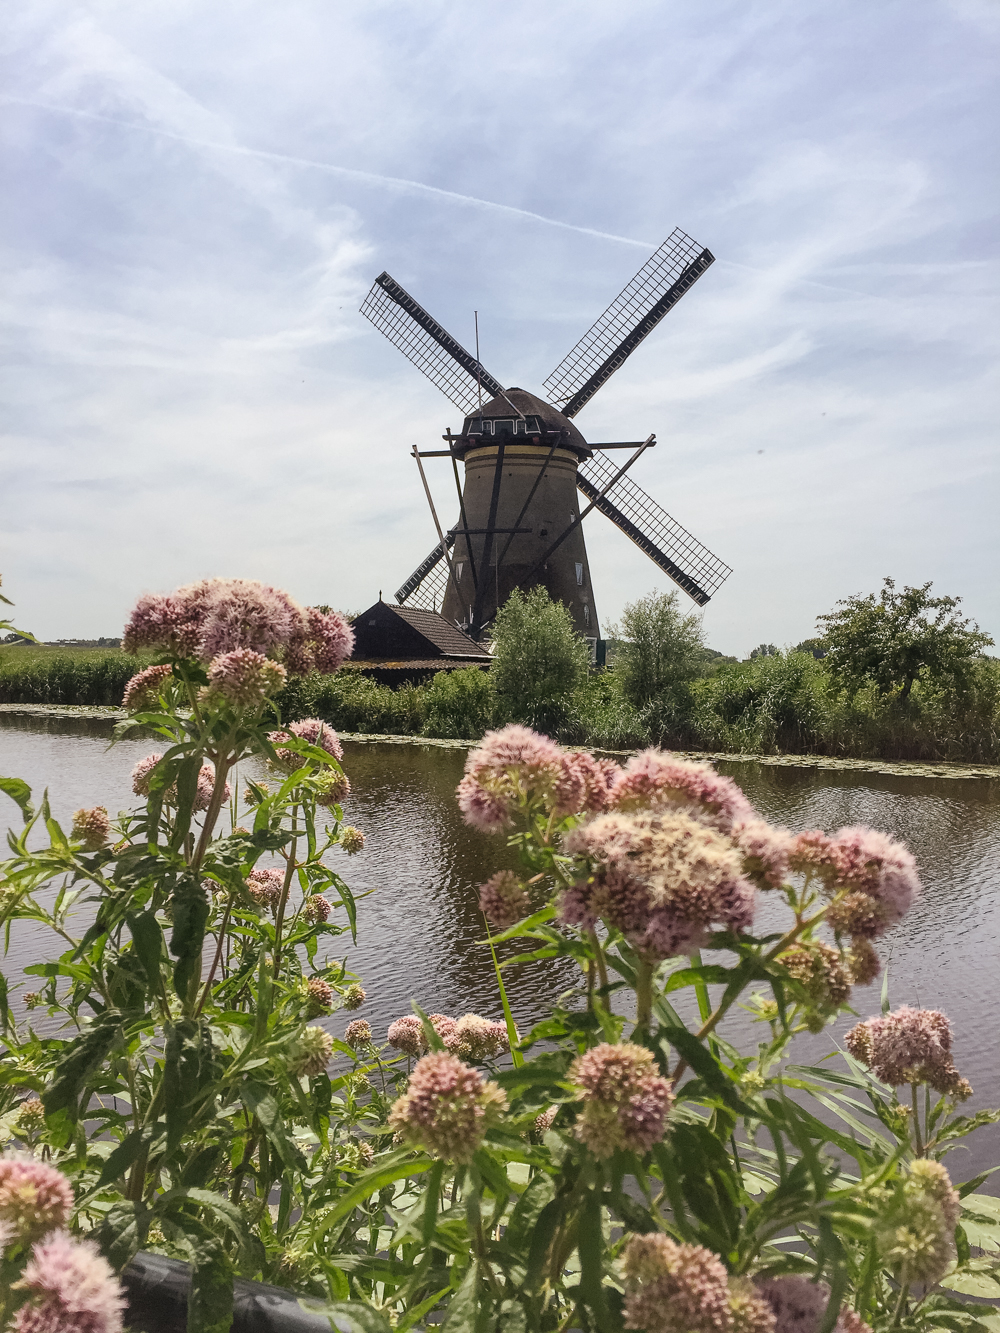 The windmills of Kinderdijk, Holland